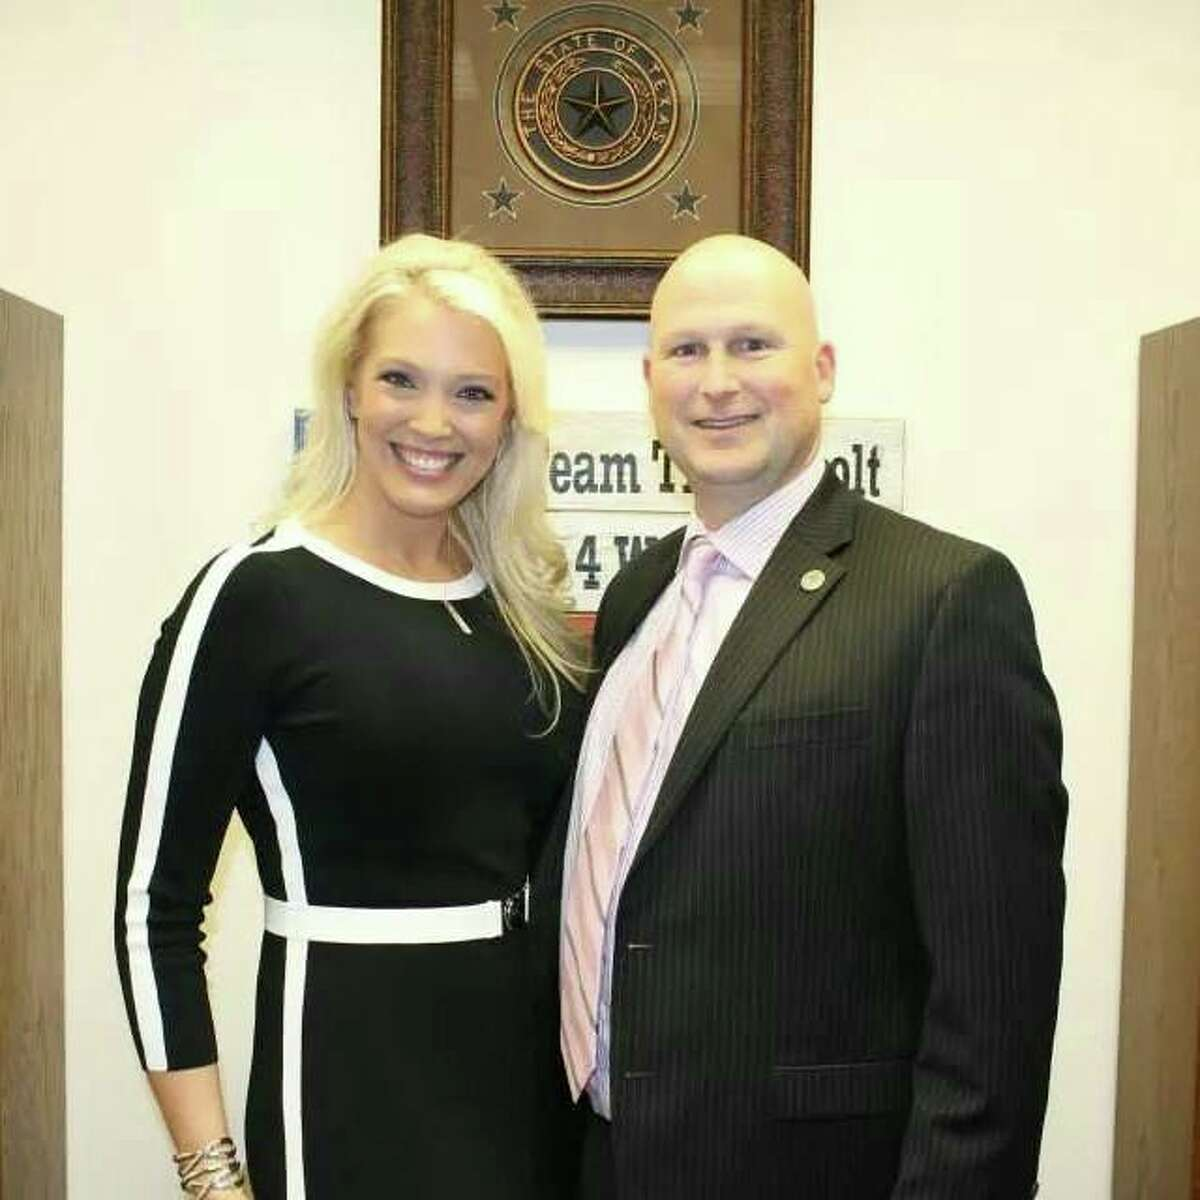 Tony Tinderholt (right) is serving his first term as a state representative from Arlington, Texas.PHOTOS: A timeline of gay marriage in Texas ...